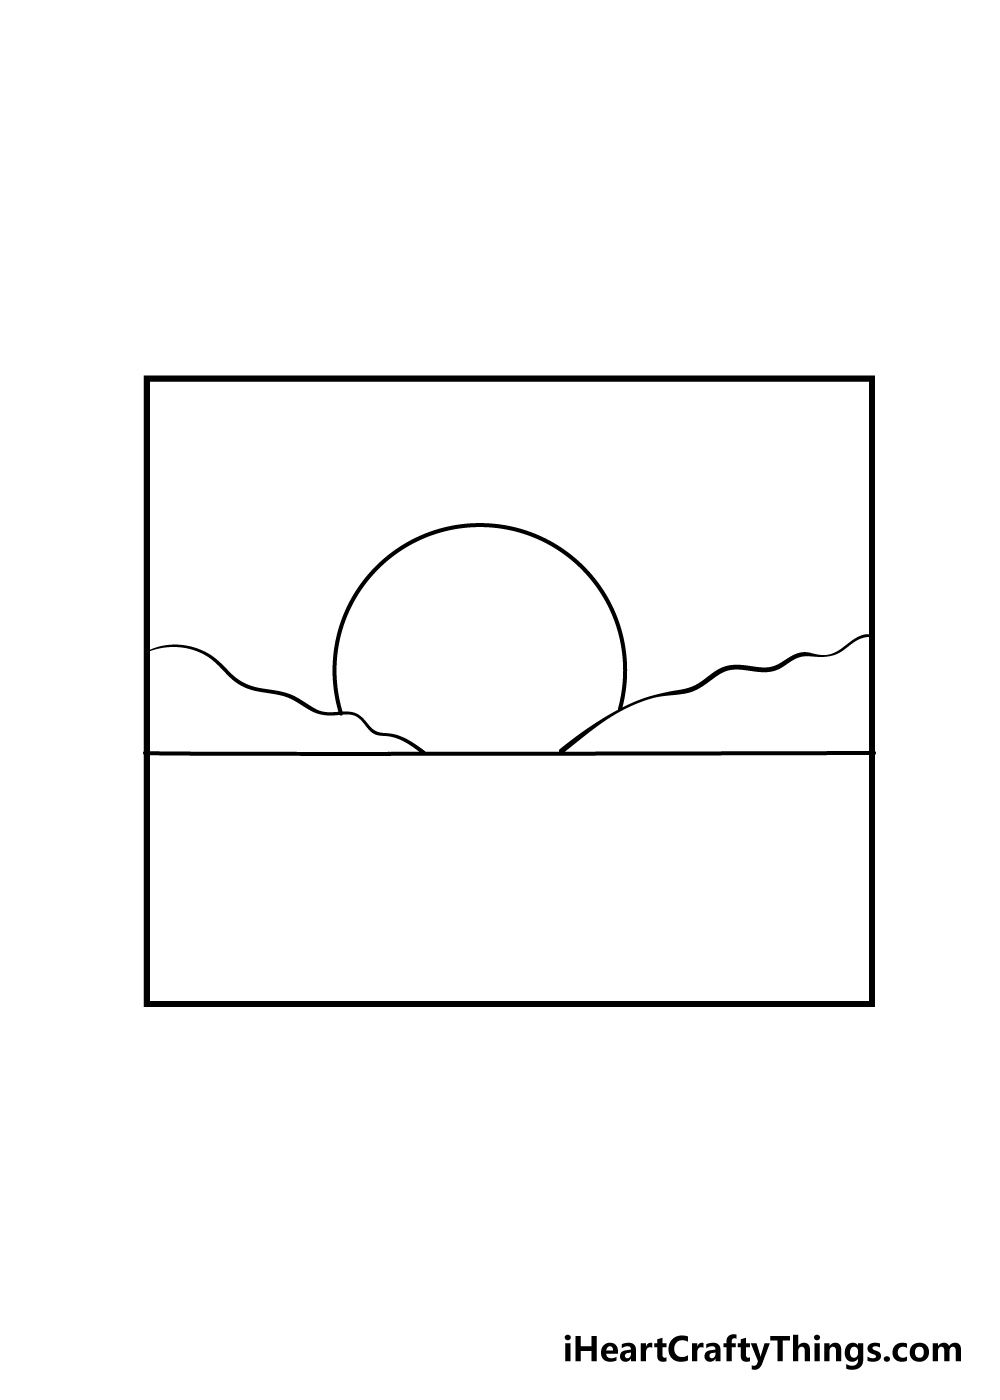 sunset drawing step 3